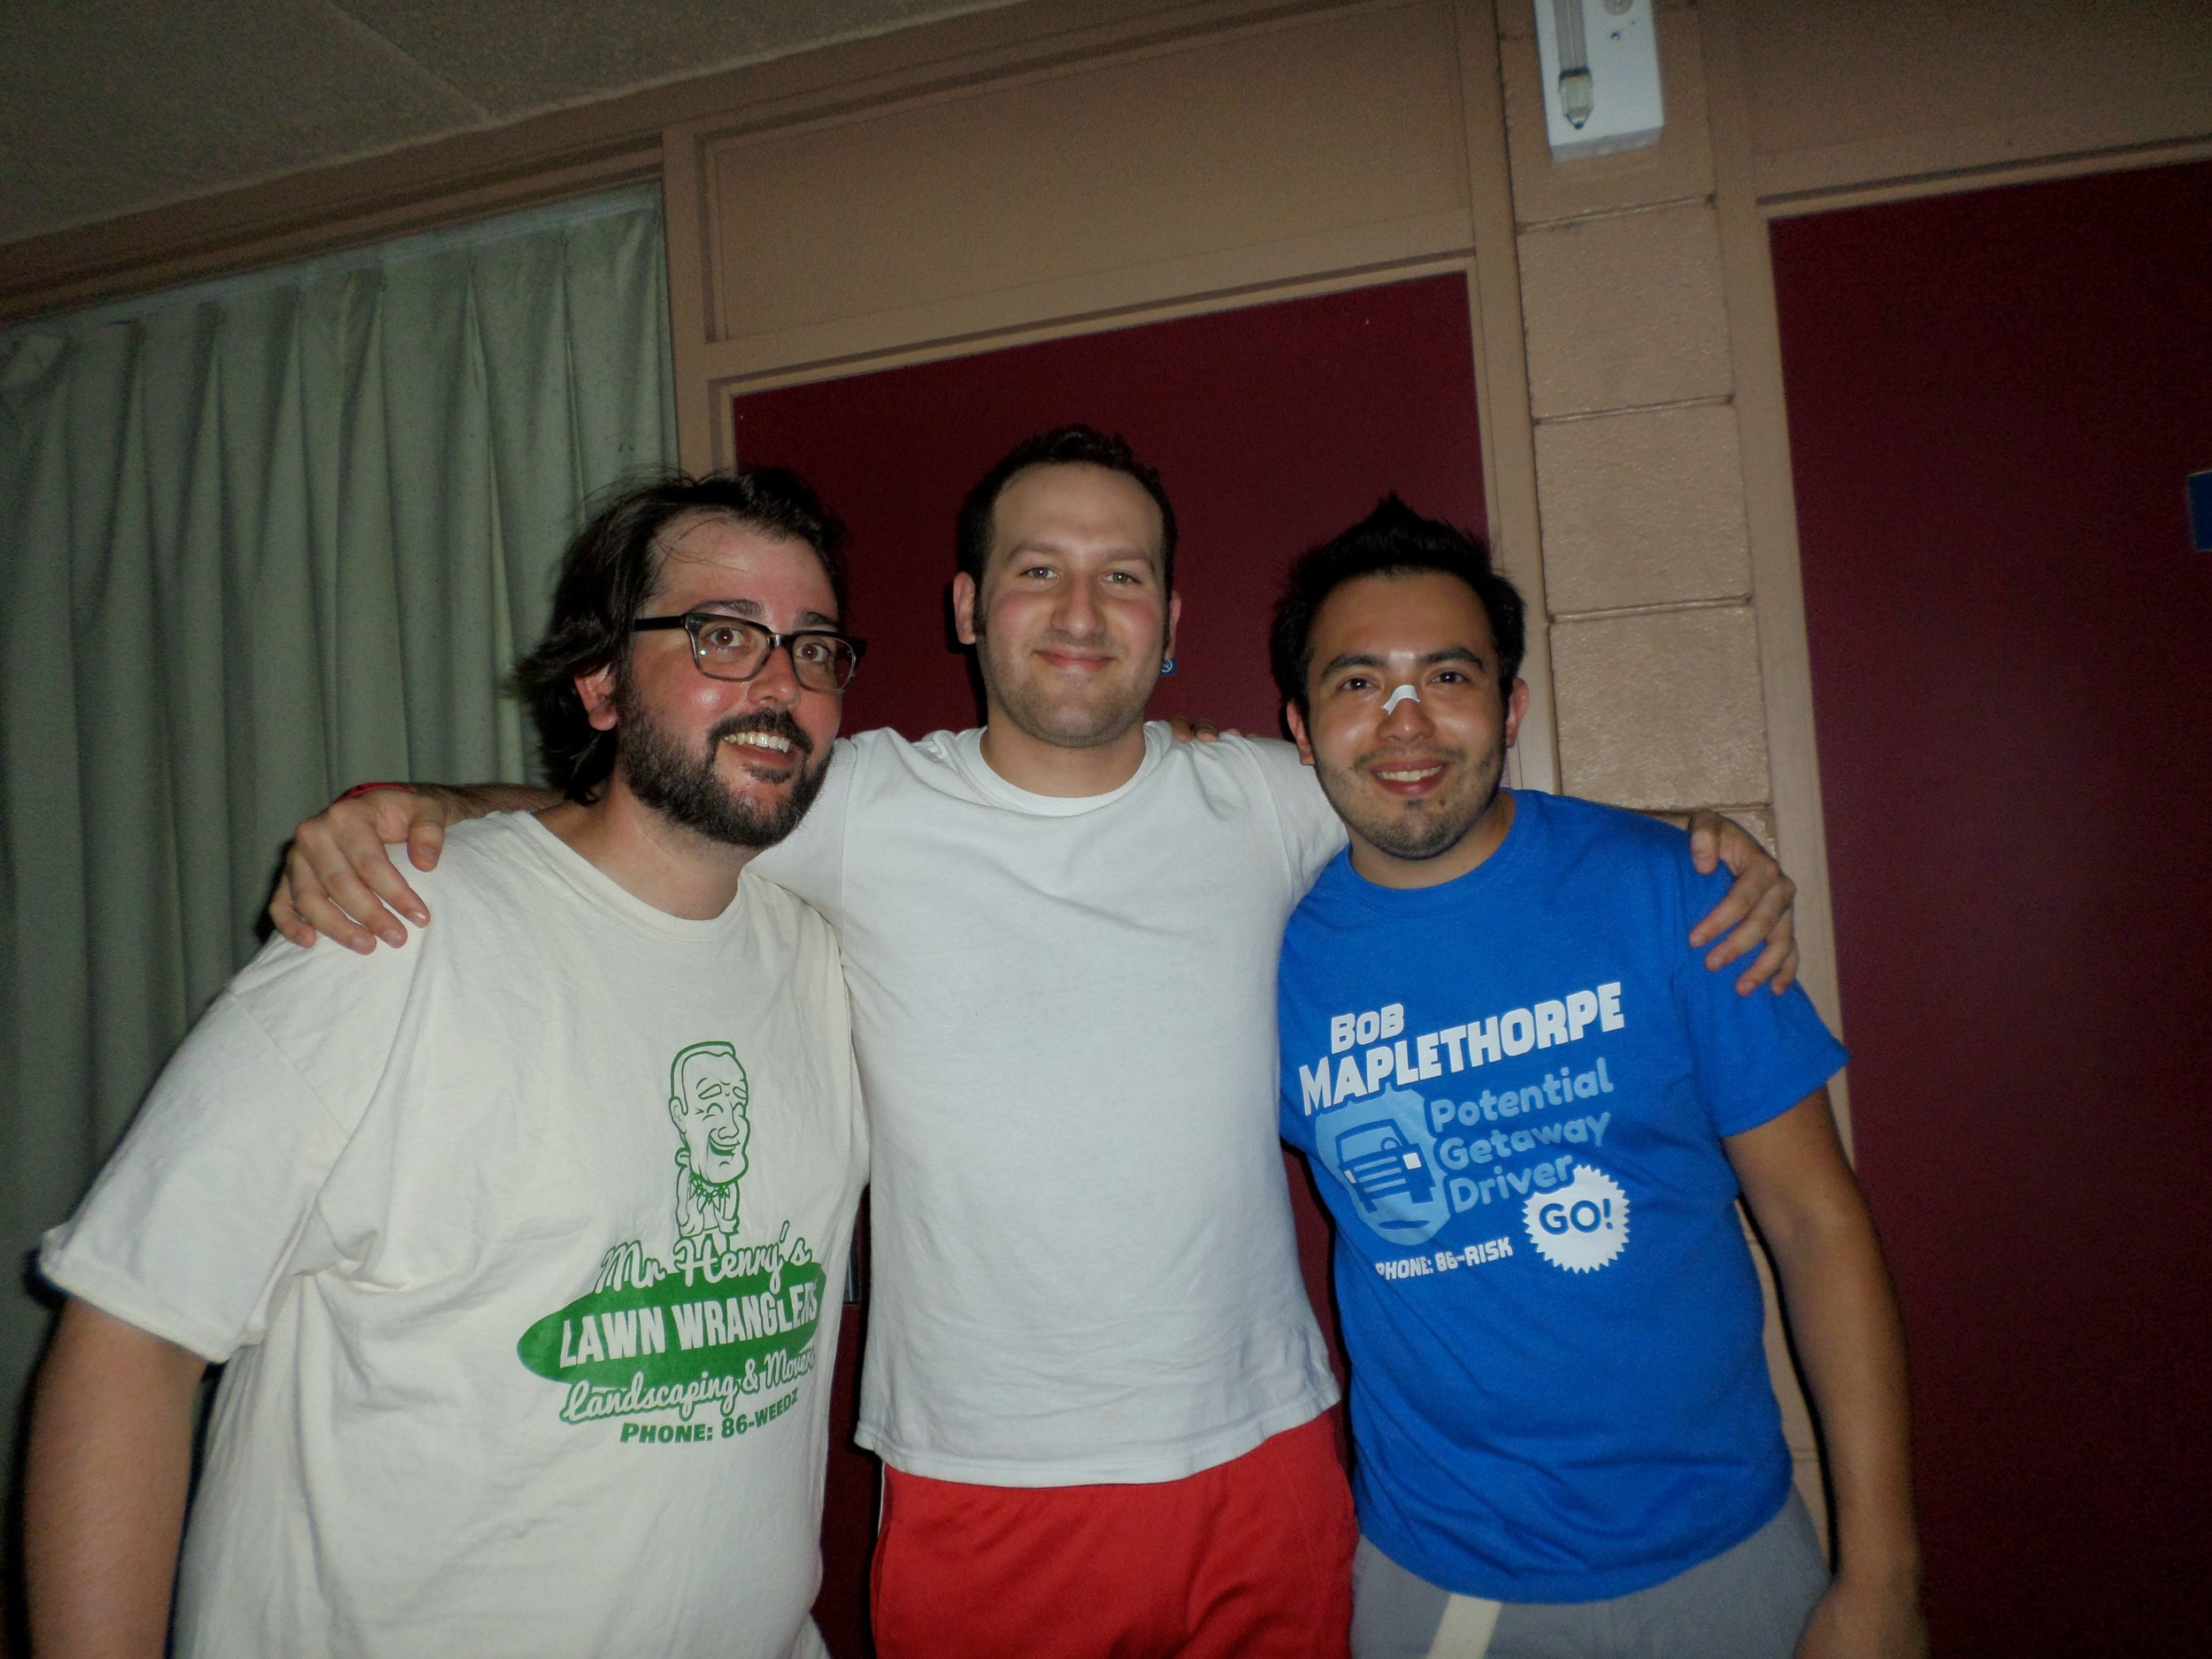 Chris and Andy with Matt Reuber - Lovely Soiree 2014